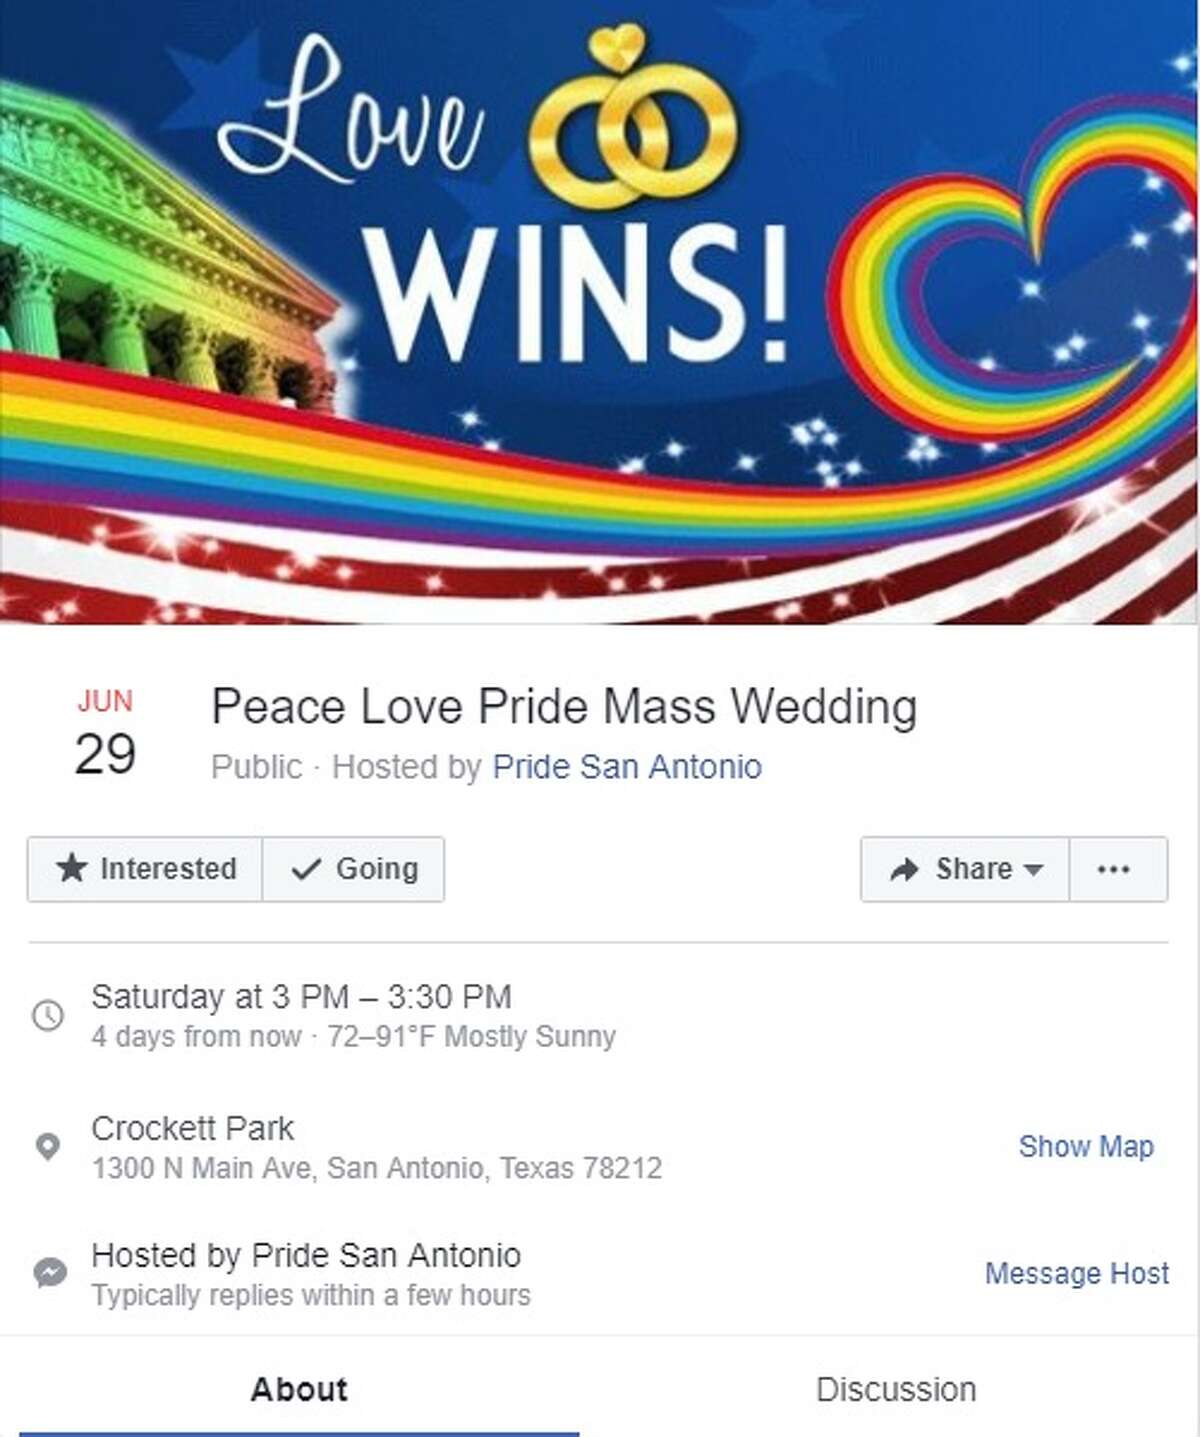 Peace Love Pride Wedding is open to all couples who wish to be married at Pride Bigger Than Texas. The event is from 3 to 3:30 p.m. Saturday at Crockett Park.